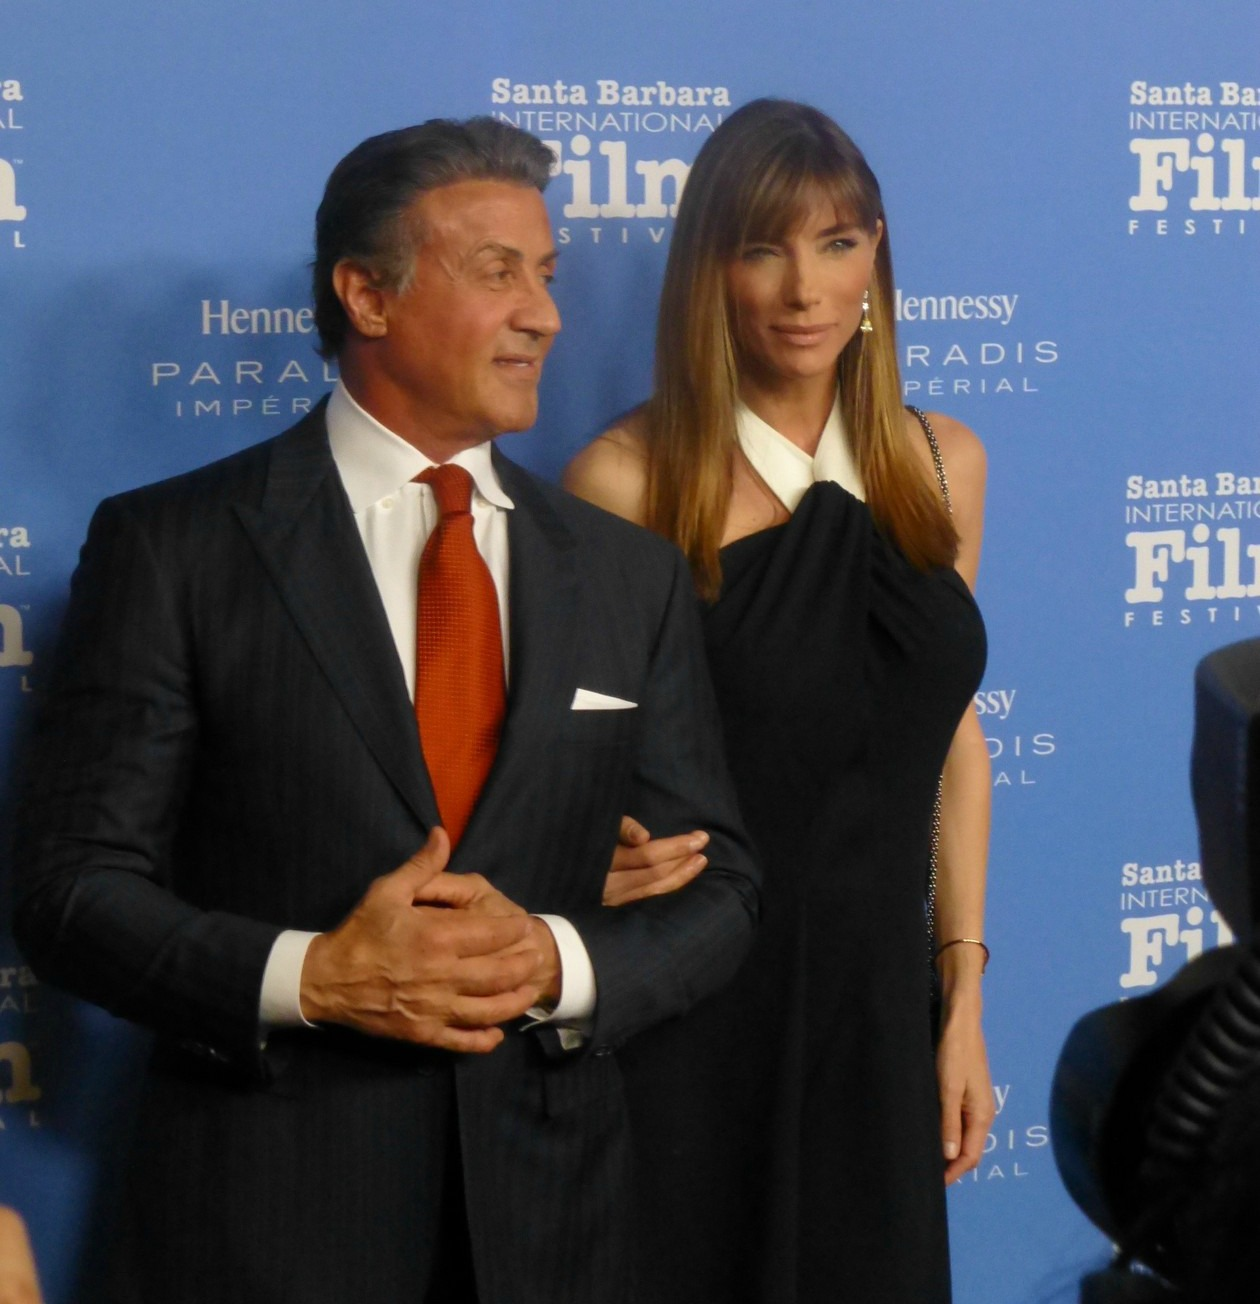 Sylvester Stallone's brother lashes out over Oscars loss